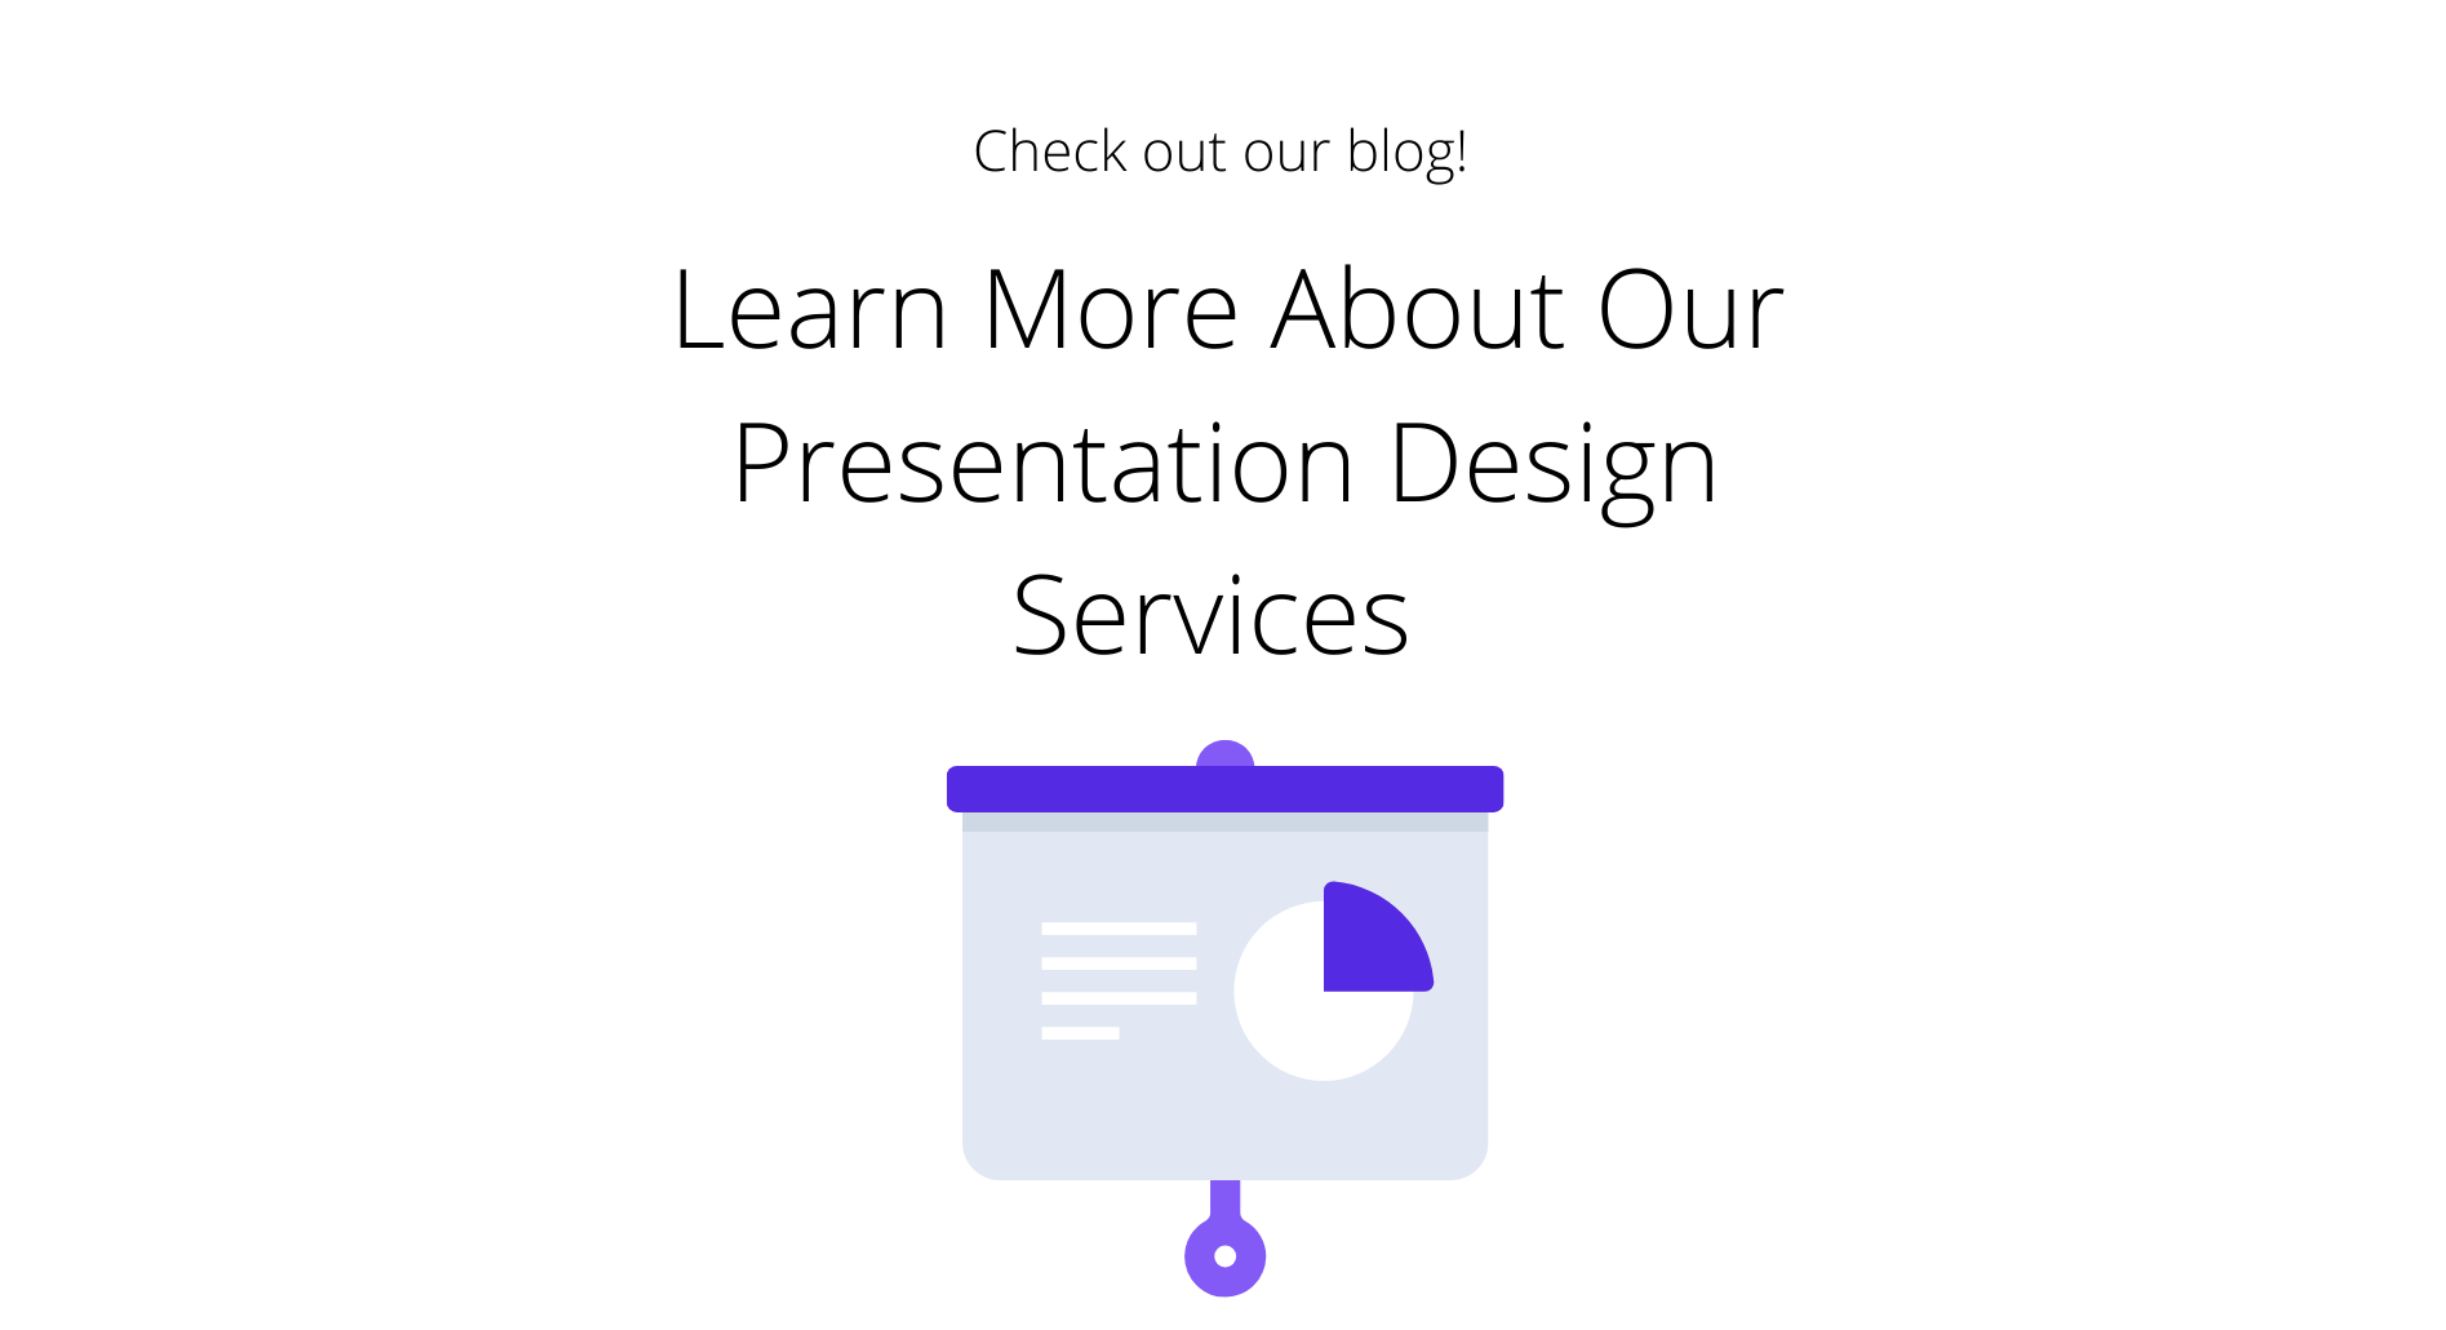 Why You Need Our Presentation Design Services